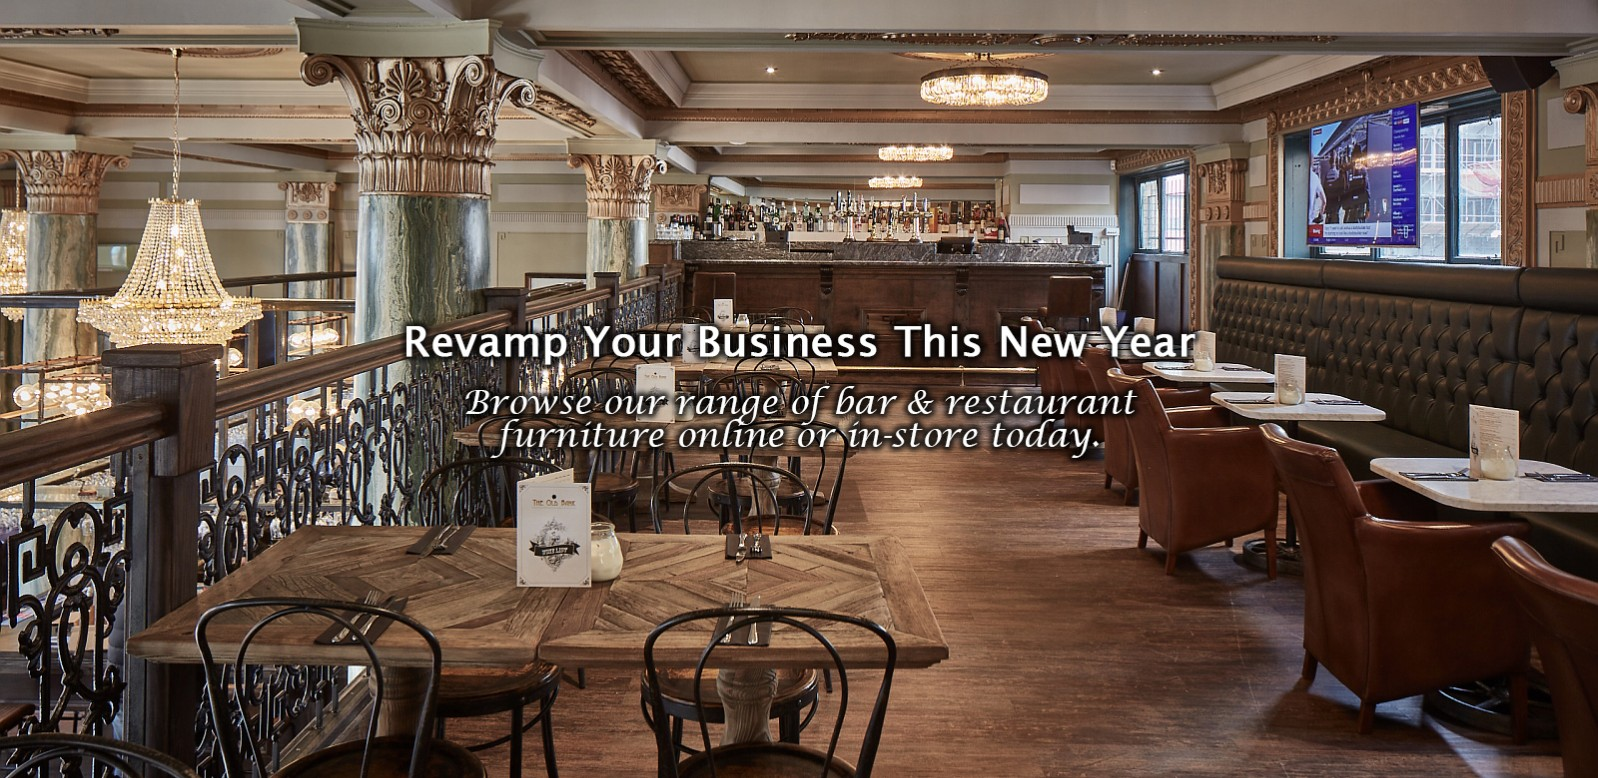 New Year Refits For Bars